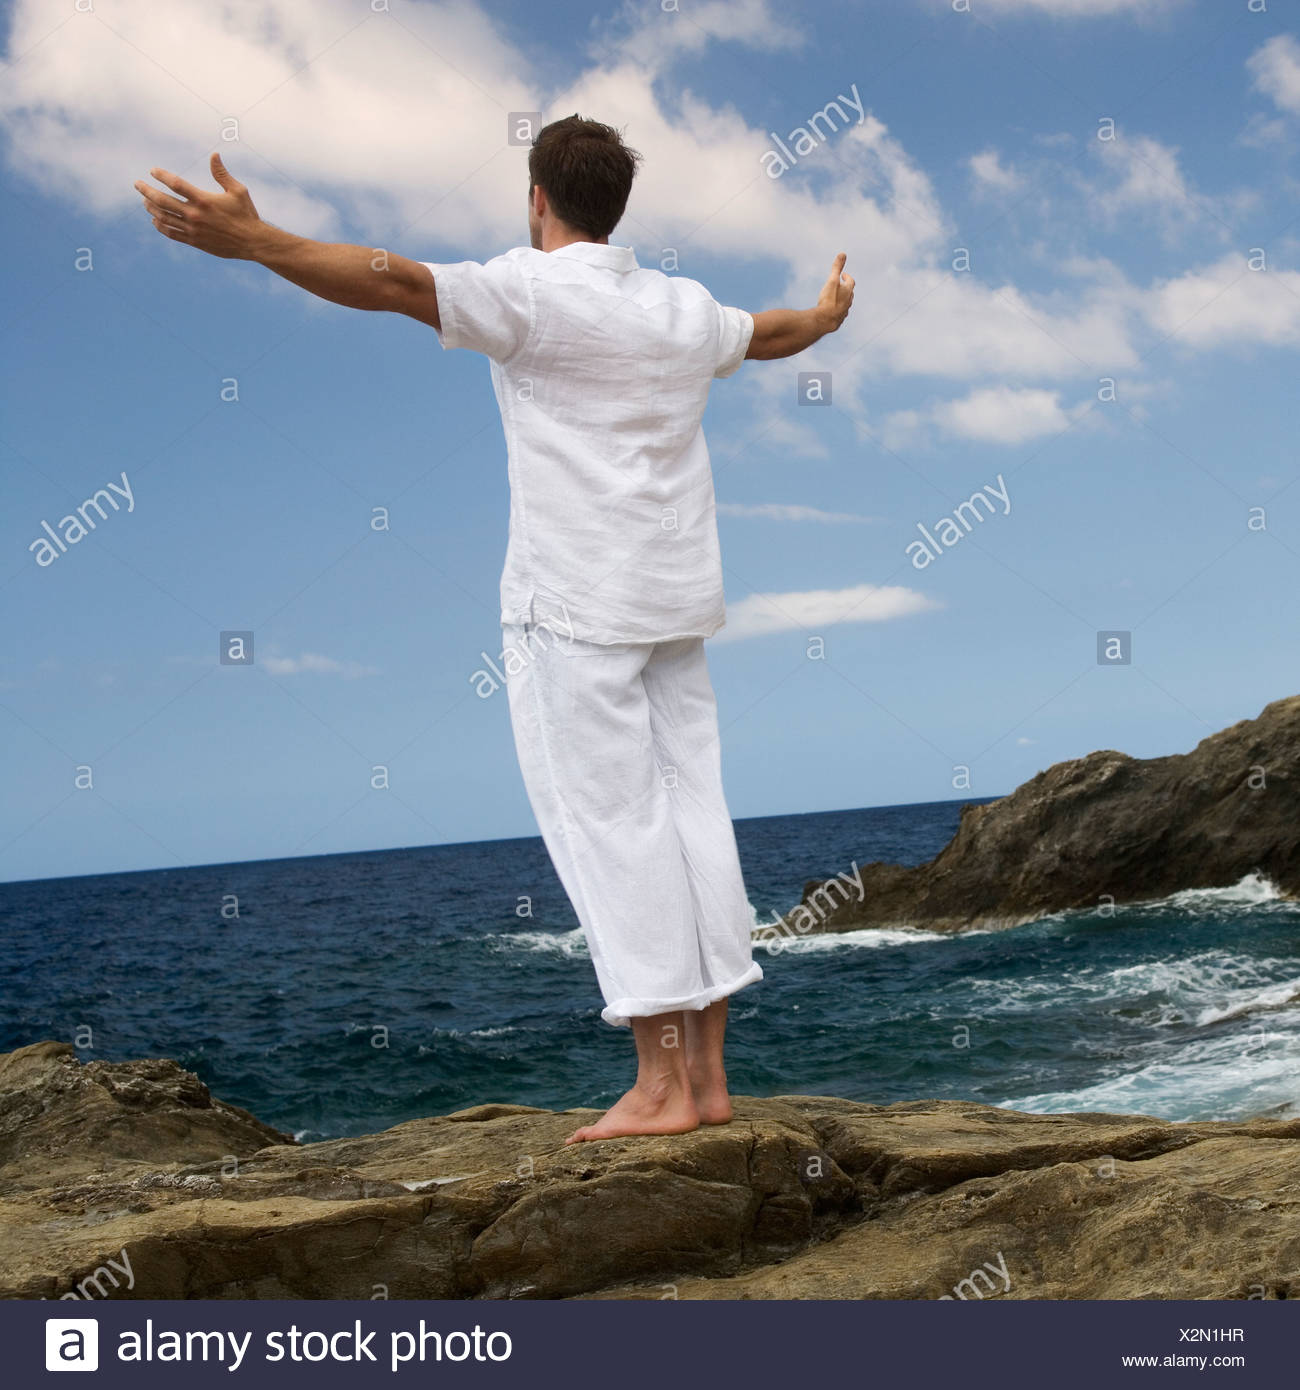 A man stretching on the rocks by the sea - Stock Image